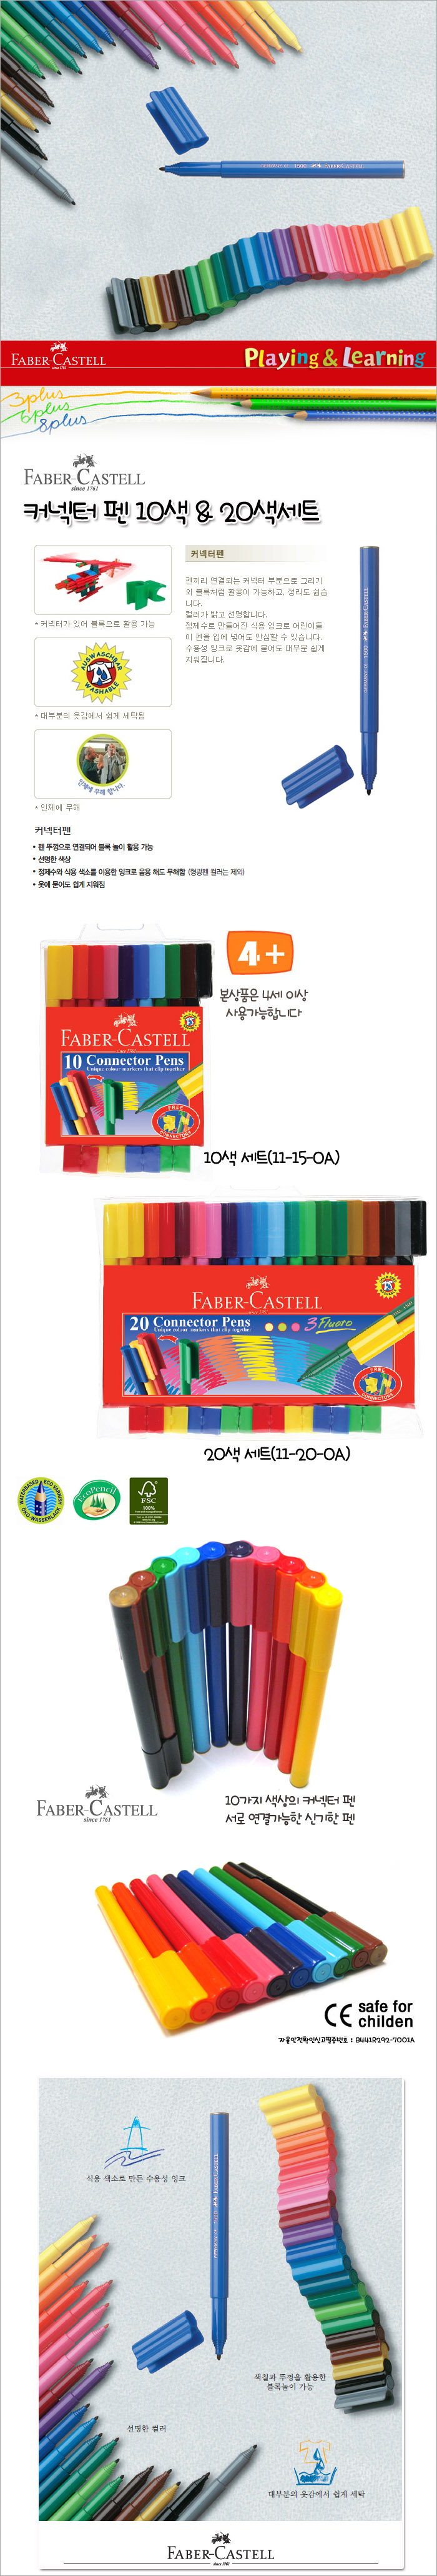 Faber-Castell Connector Pens